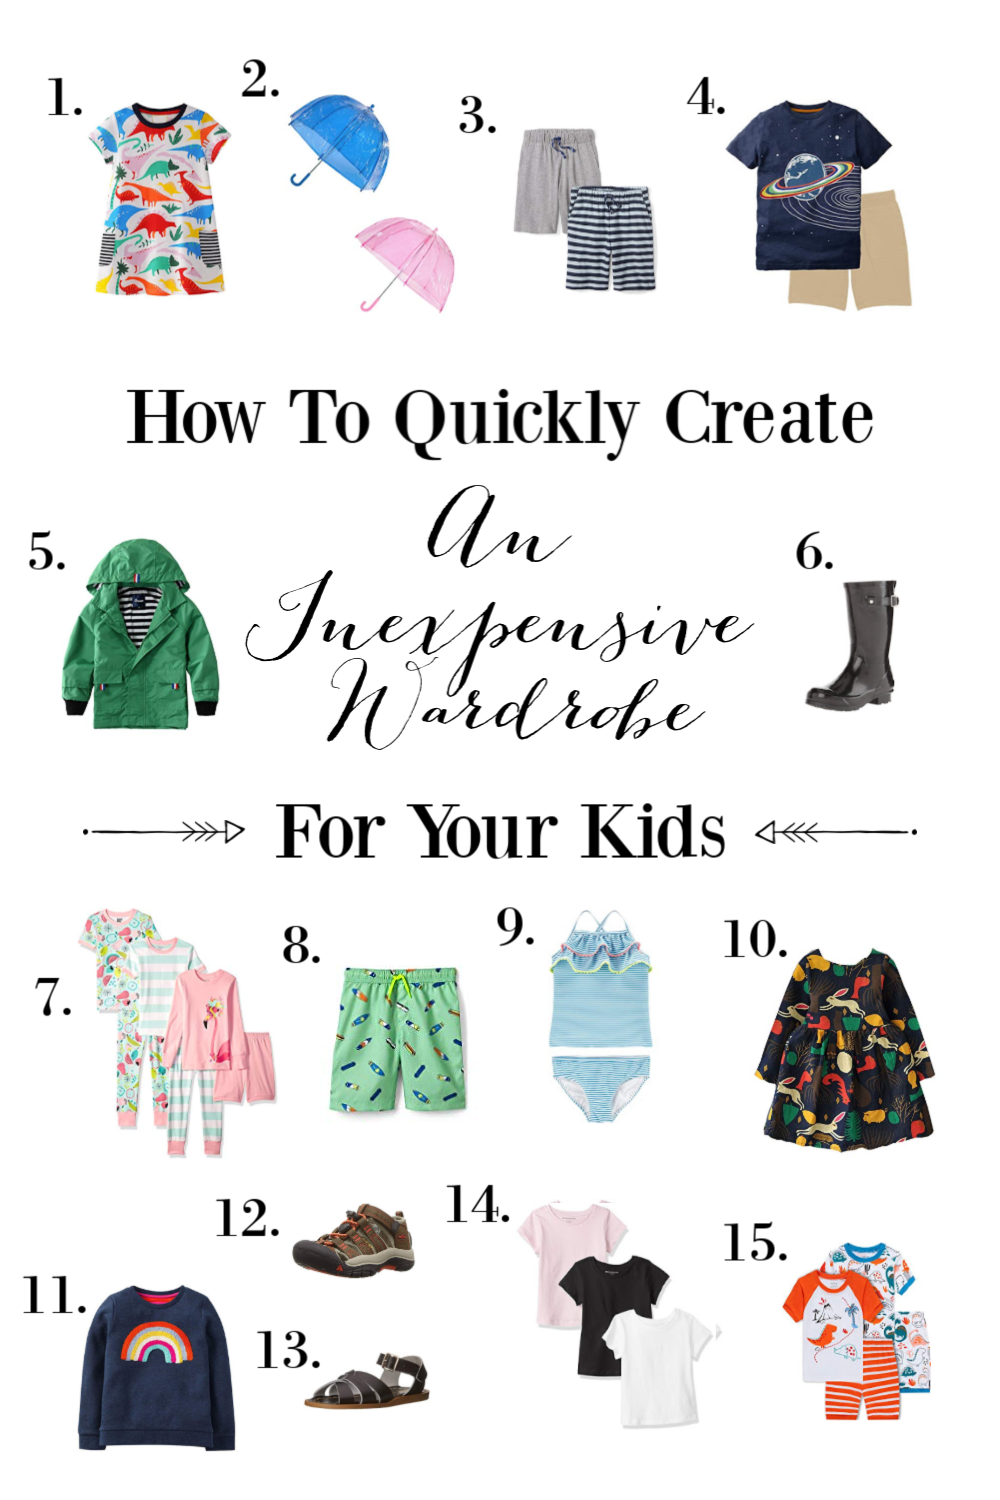 With growing kids, the change of season requires an update in their clothing. Sound expensive? I'll show you how to create an inexpensive wardrobe for kids.